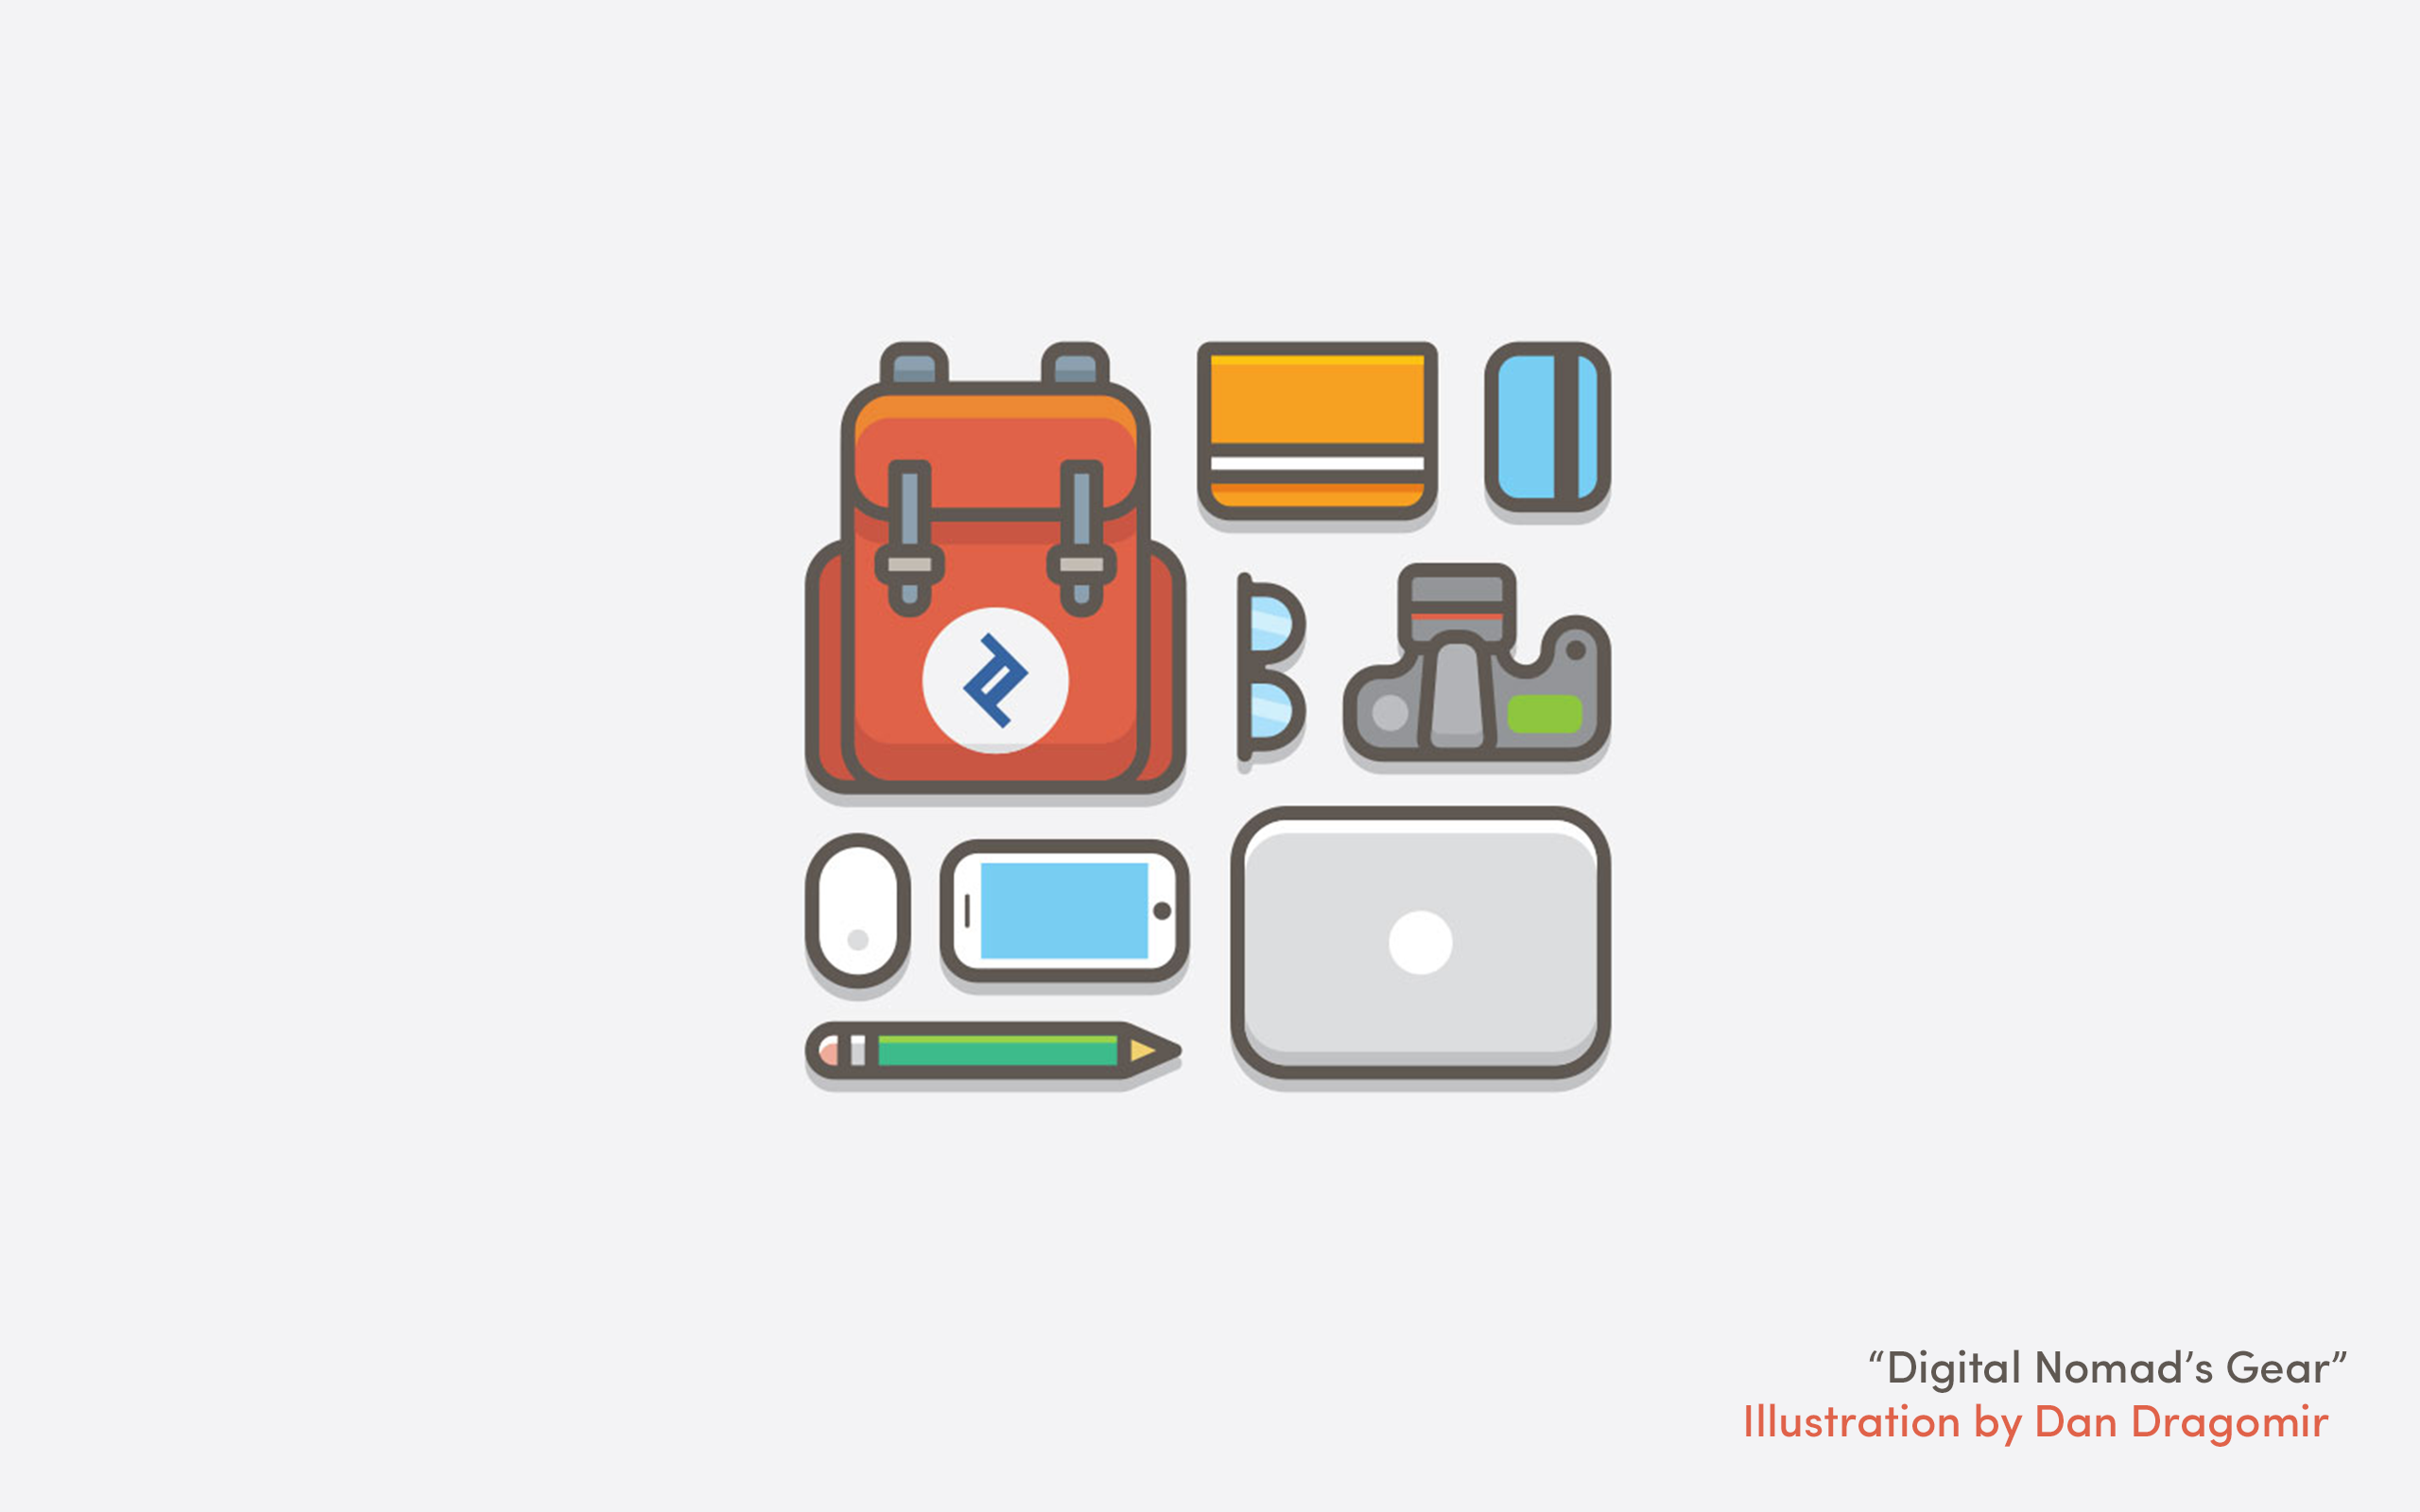 digital-nomad-gear-by-dan-dragomir2x.png